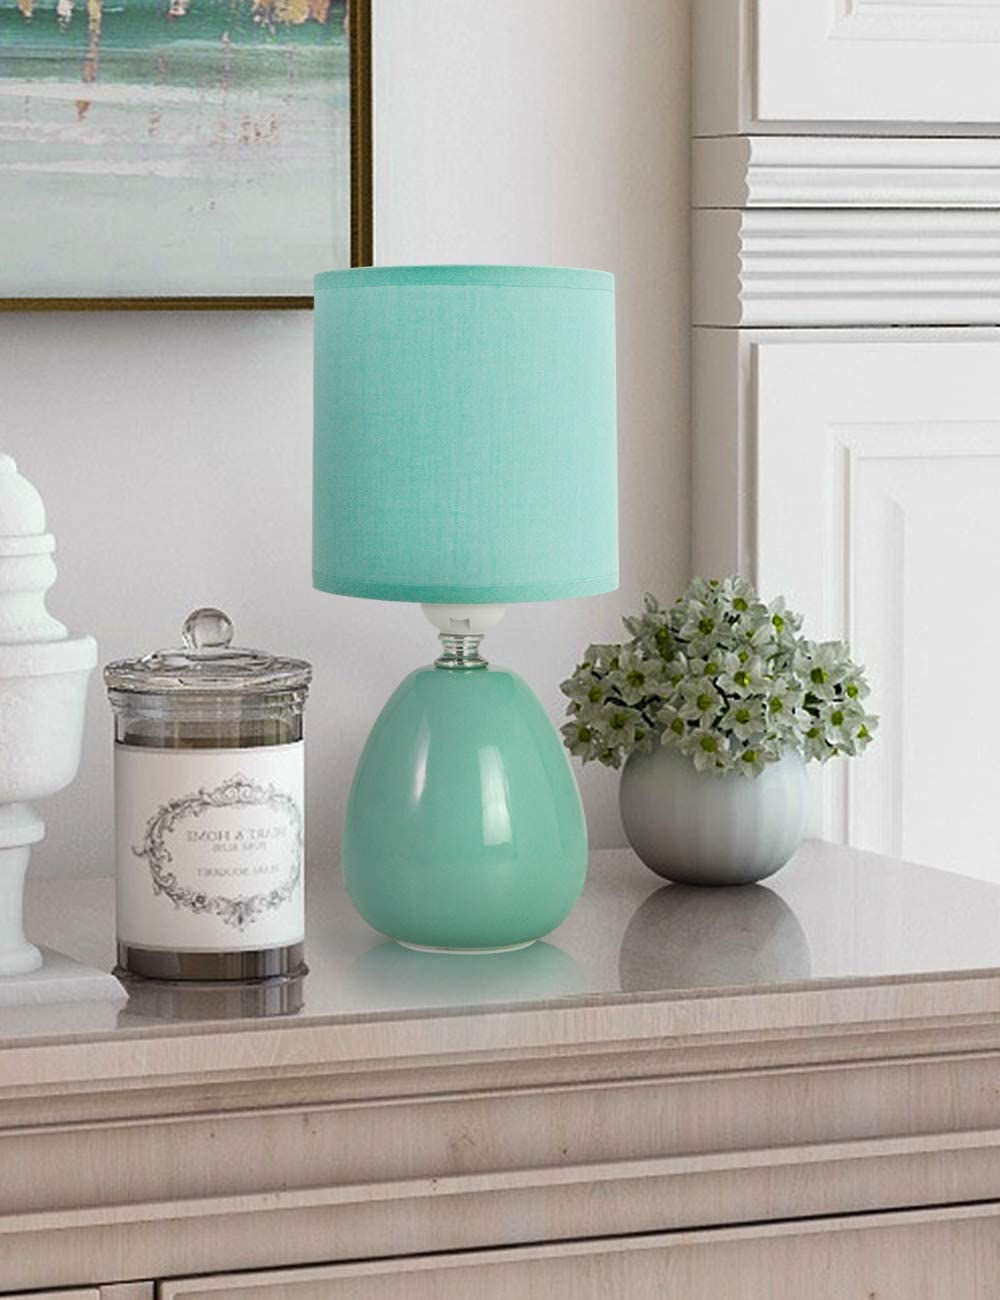 Petrala Table Lamp Small Modern Mid Century Green Teal Blue Ceramic Light with Shades for Living Room Bedroom Office Home Decor Christmas Gifts